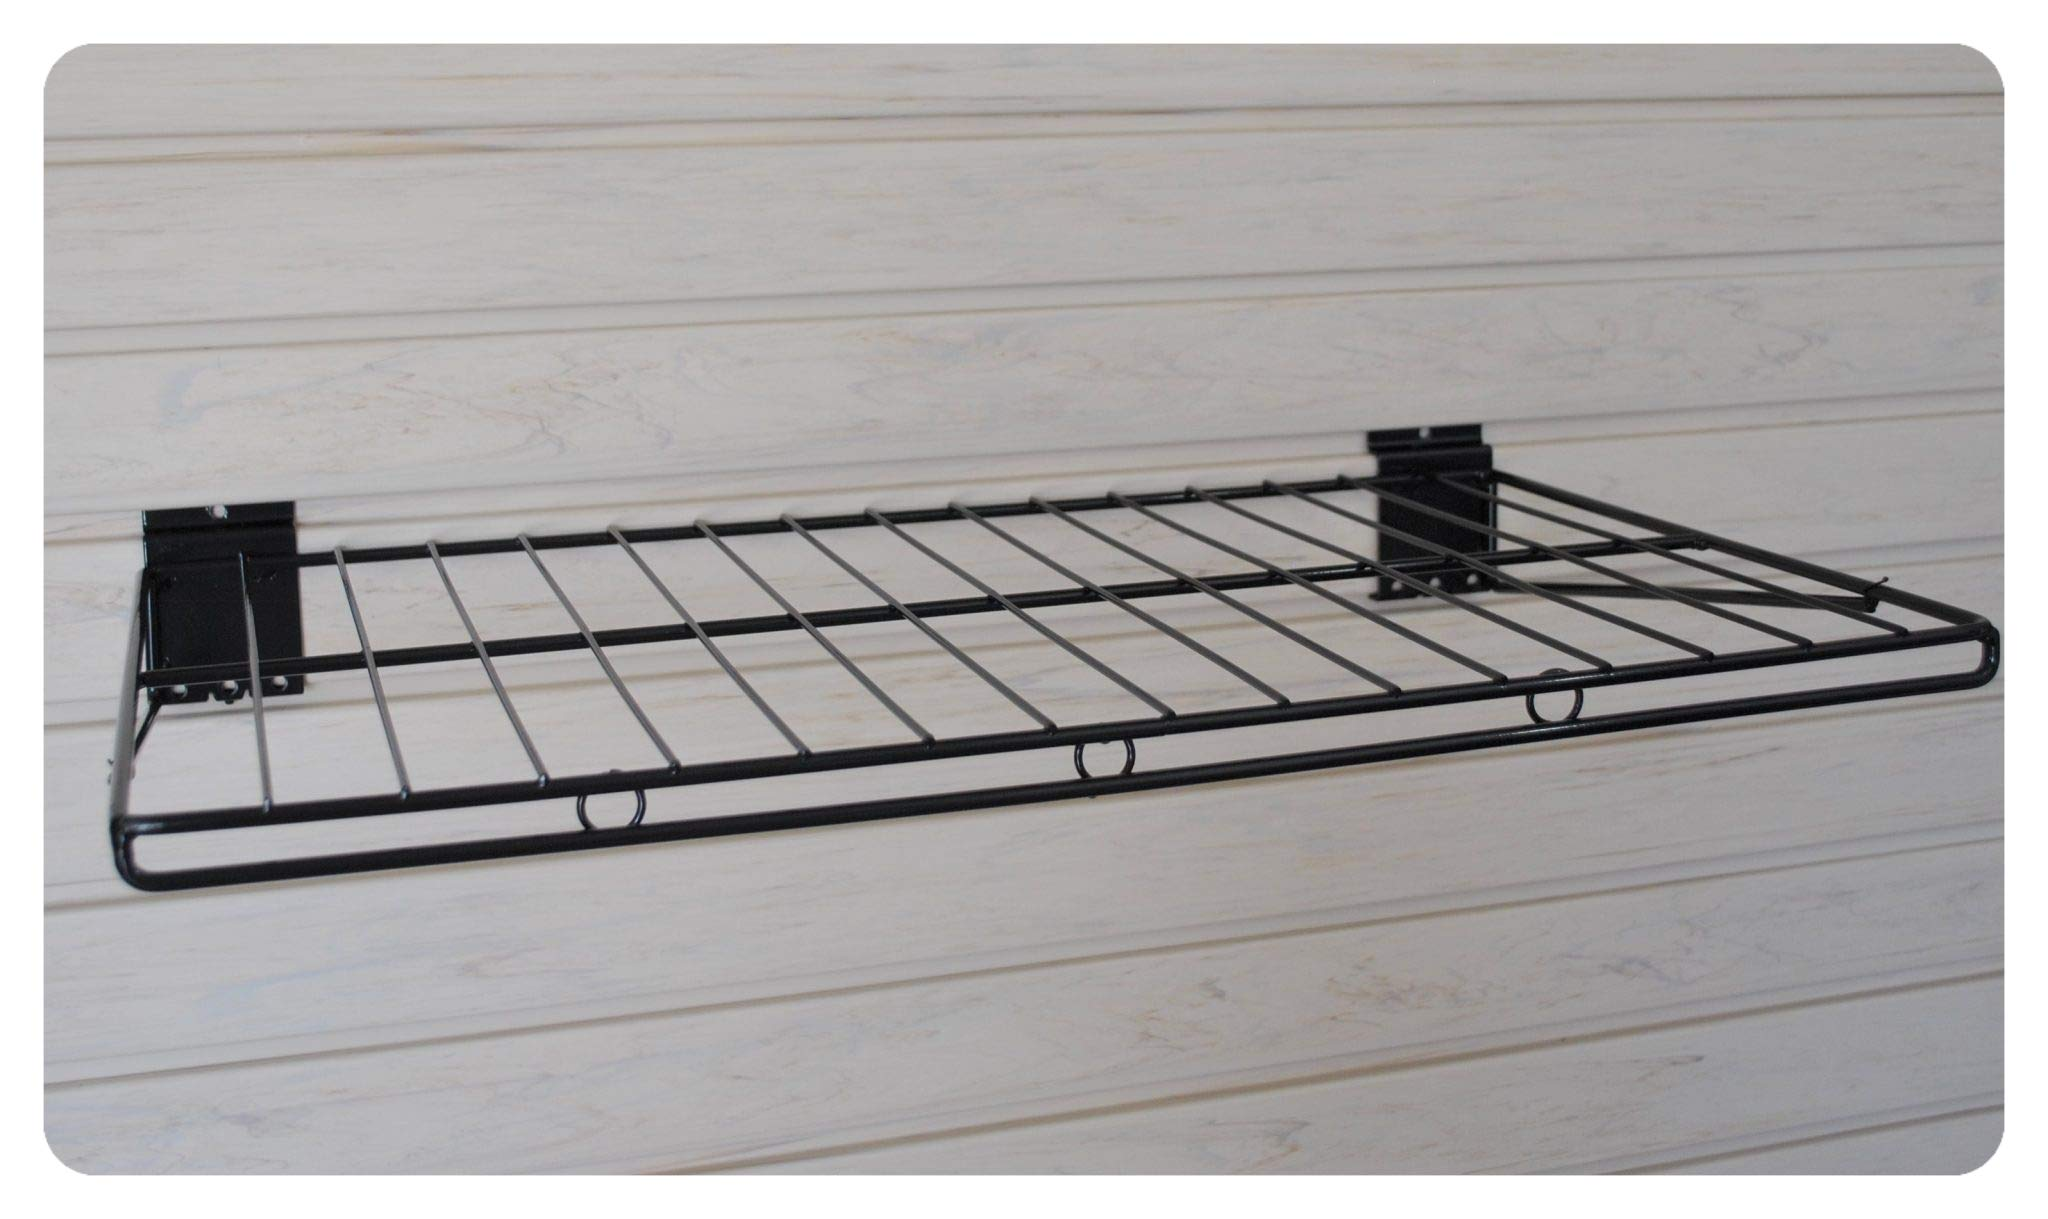 GaragePro 14'' x 24'' Ventilated Shelf for Slatwall Panels by The Garage Project